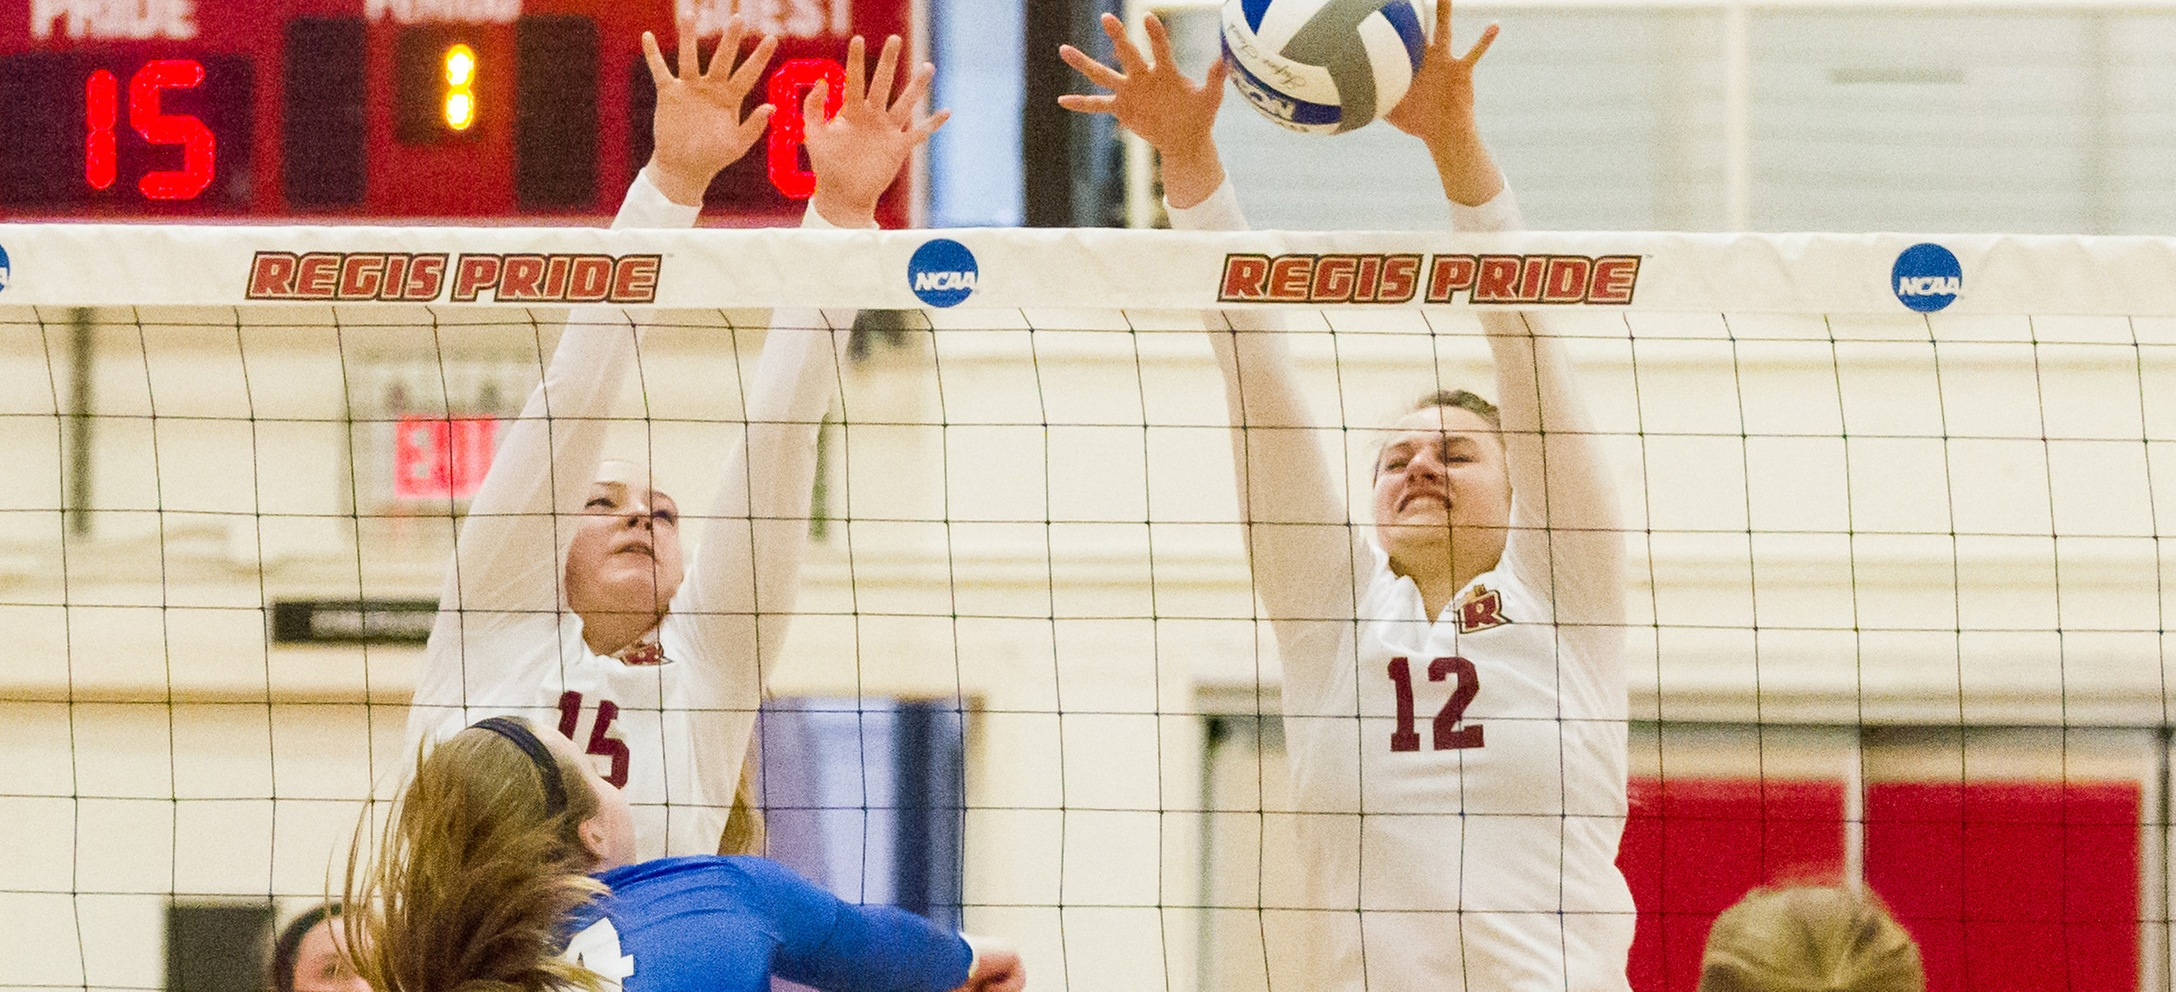 Faber, Veasey Post Career Highs, Women's Volleyball Falls At Brandeis